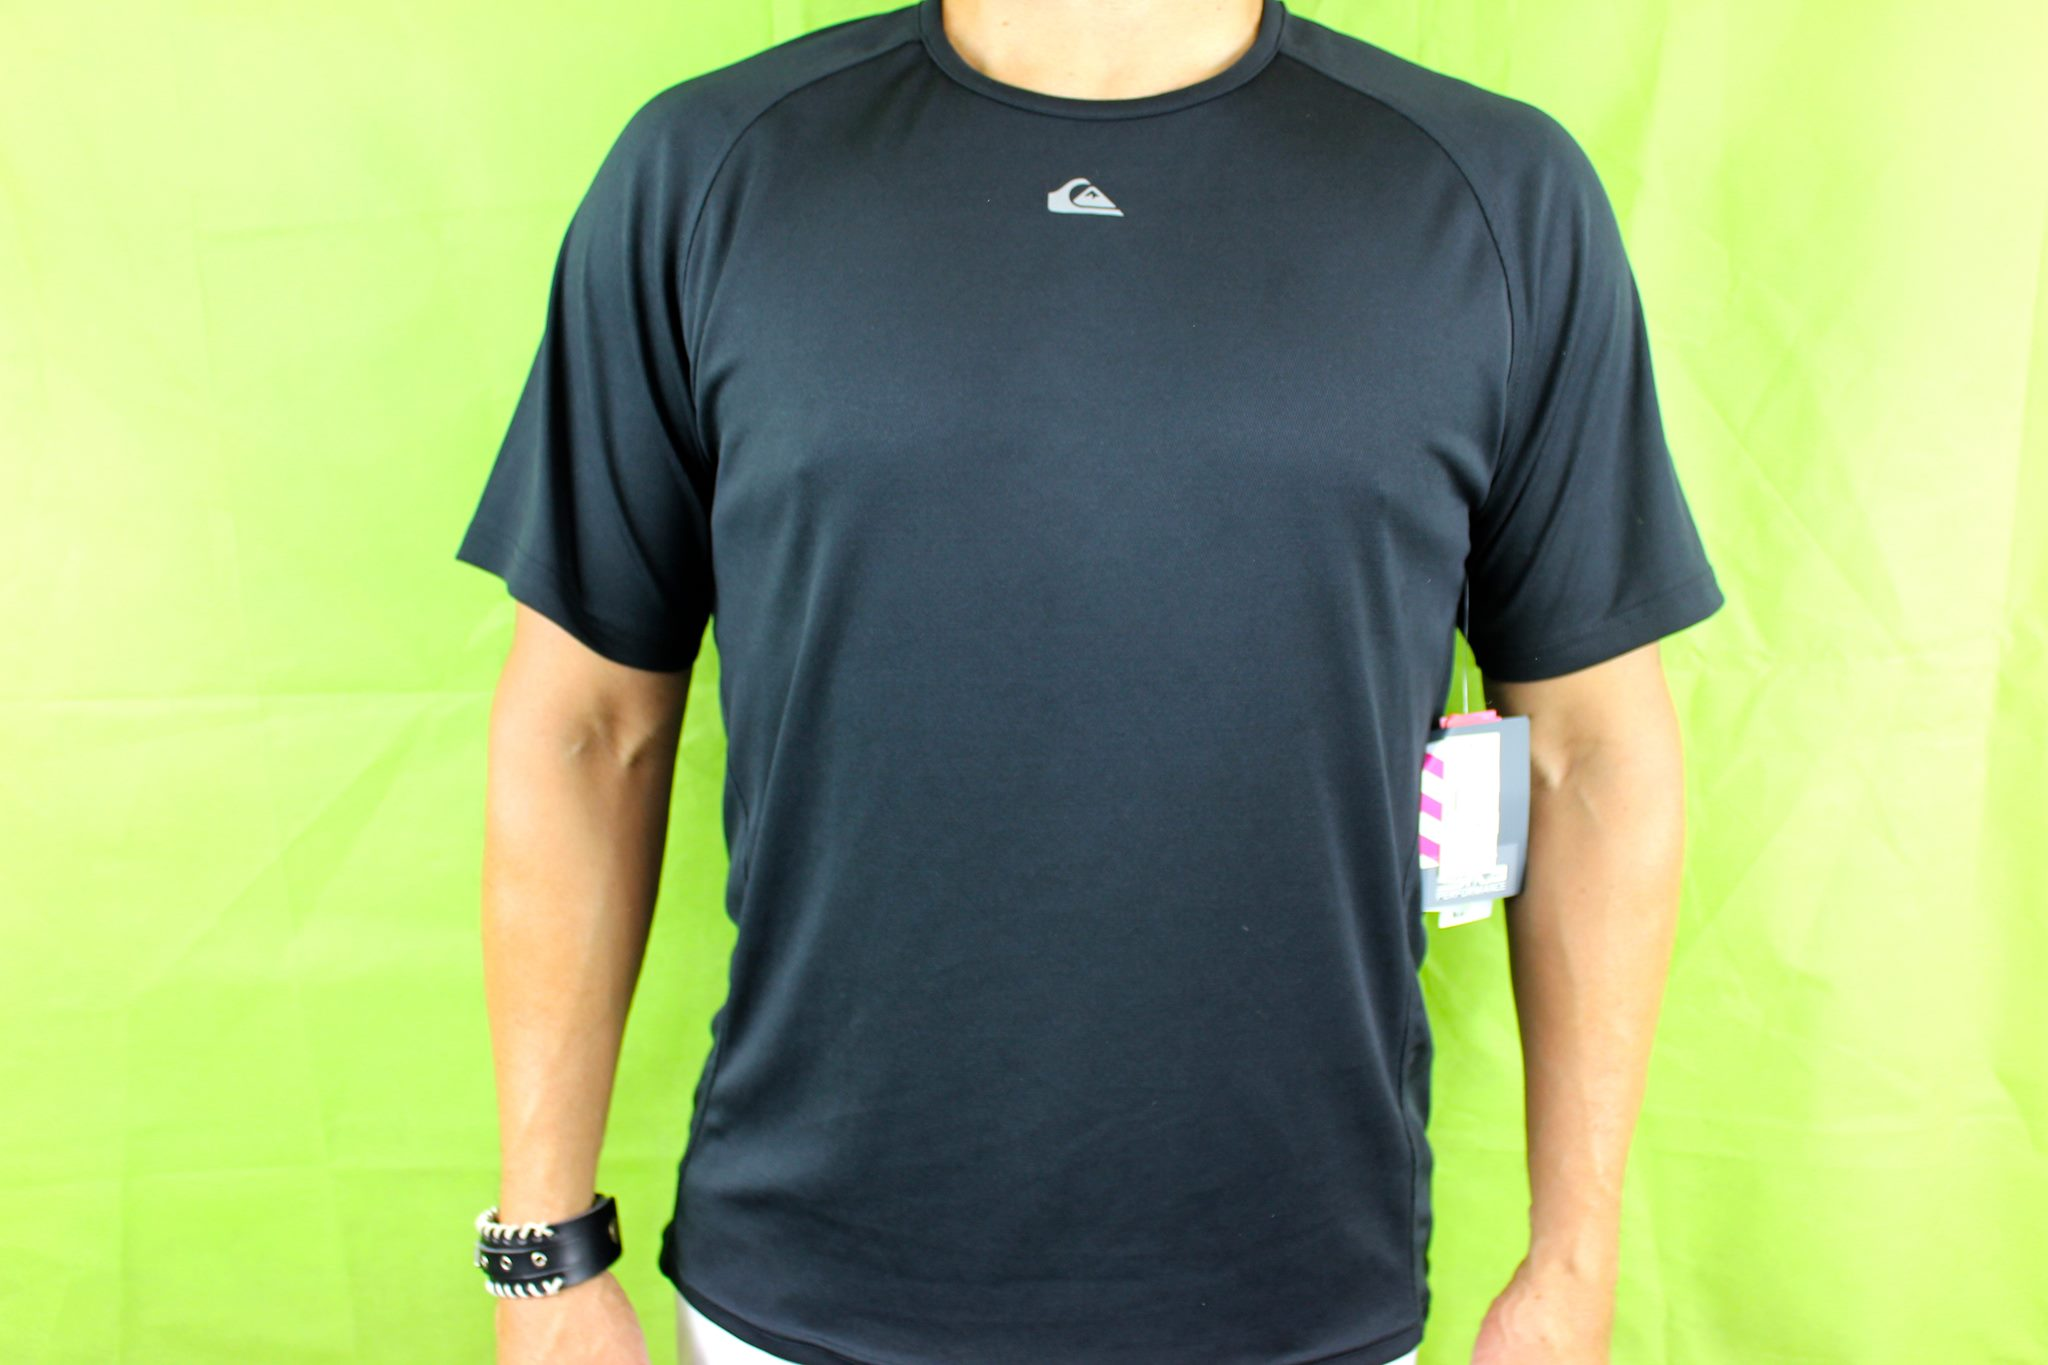 5261fd3034b QUIKSILVER T-SHIRT ATHLETIC ACTIVE DRI-FIT TEE T-SHIRT SIZE M 40 ...